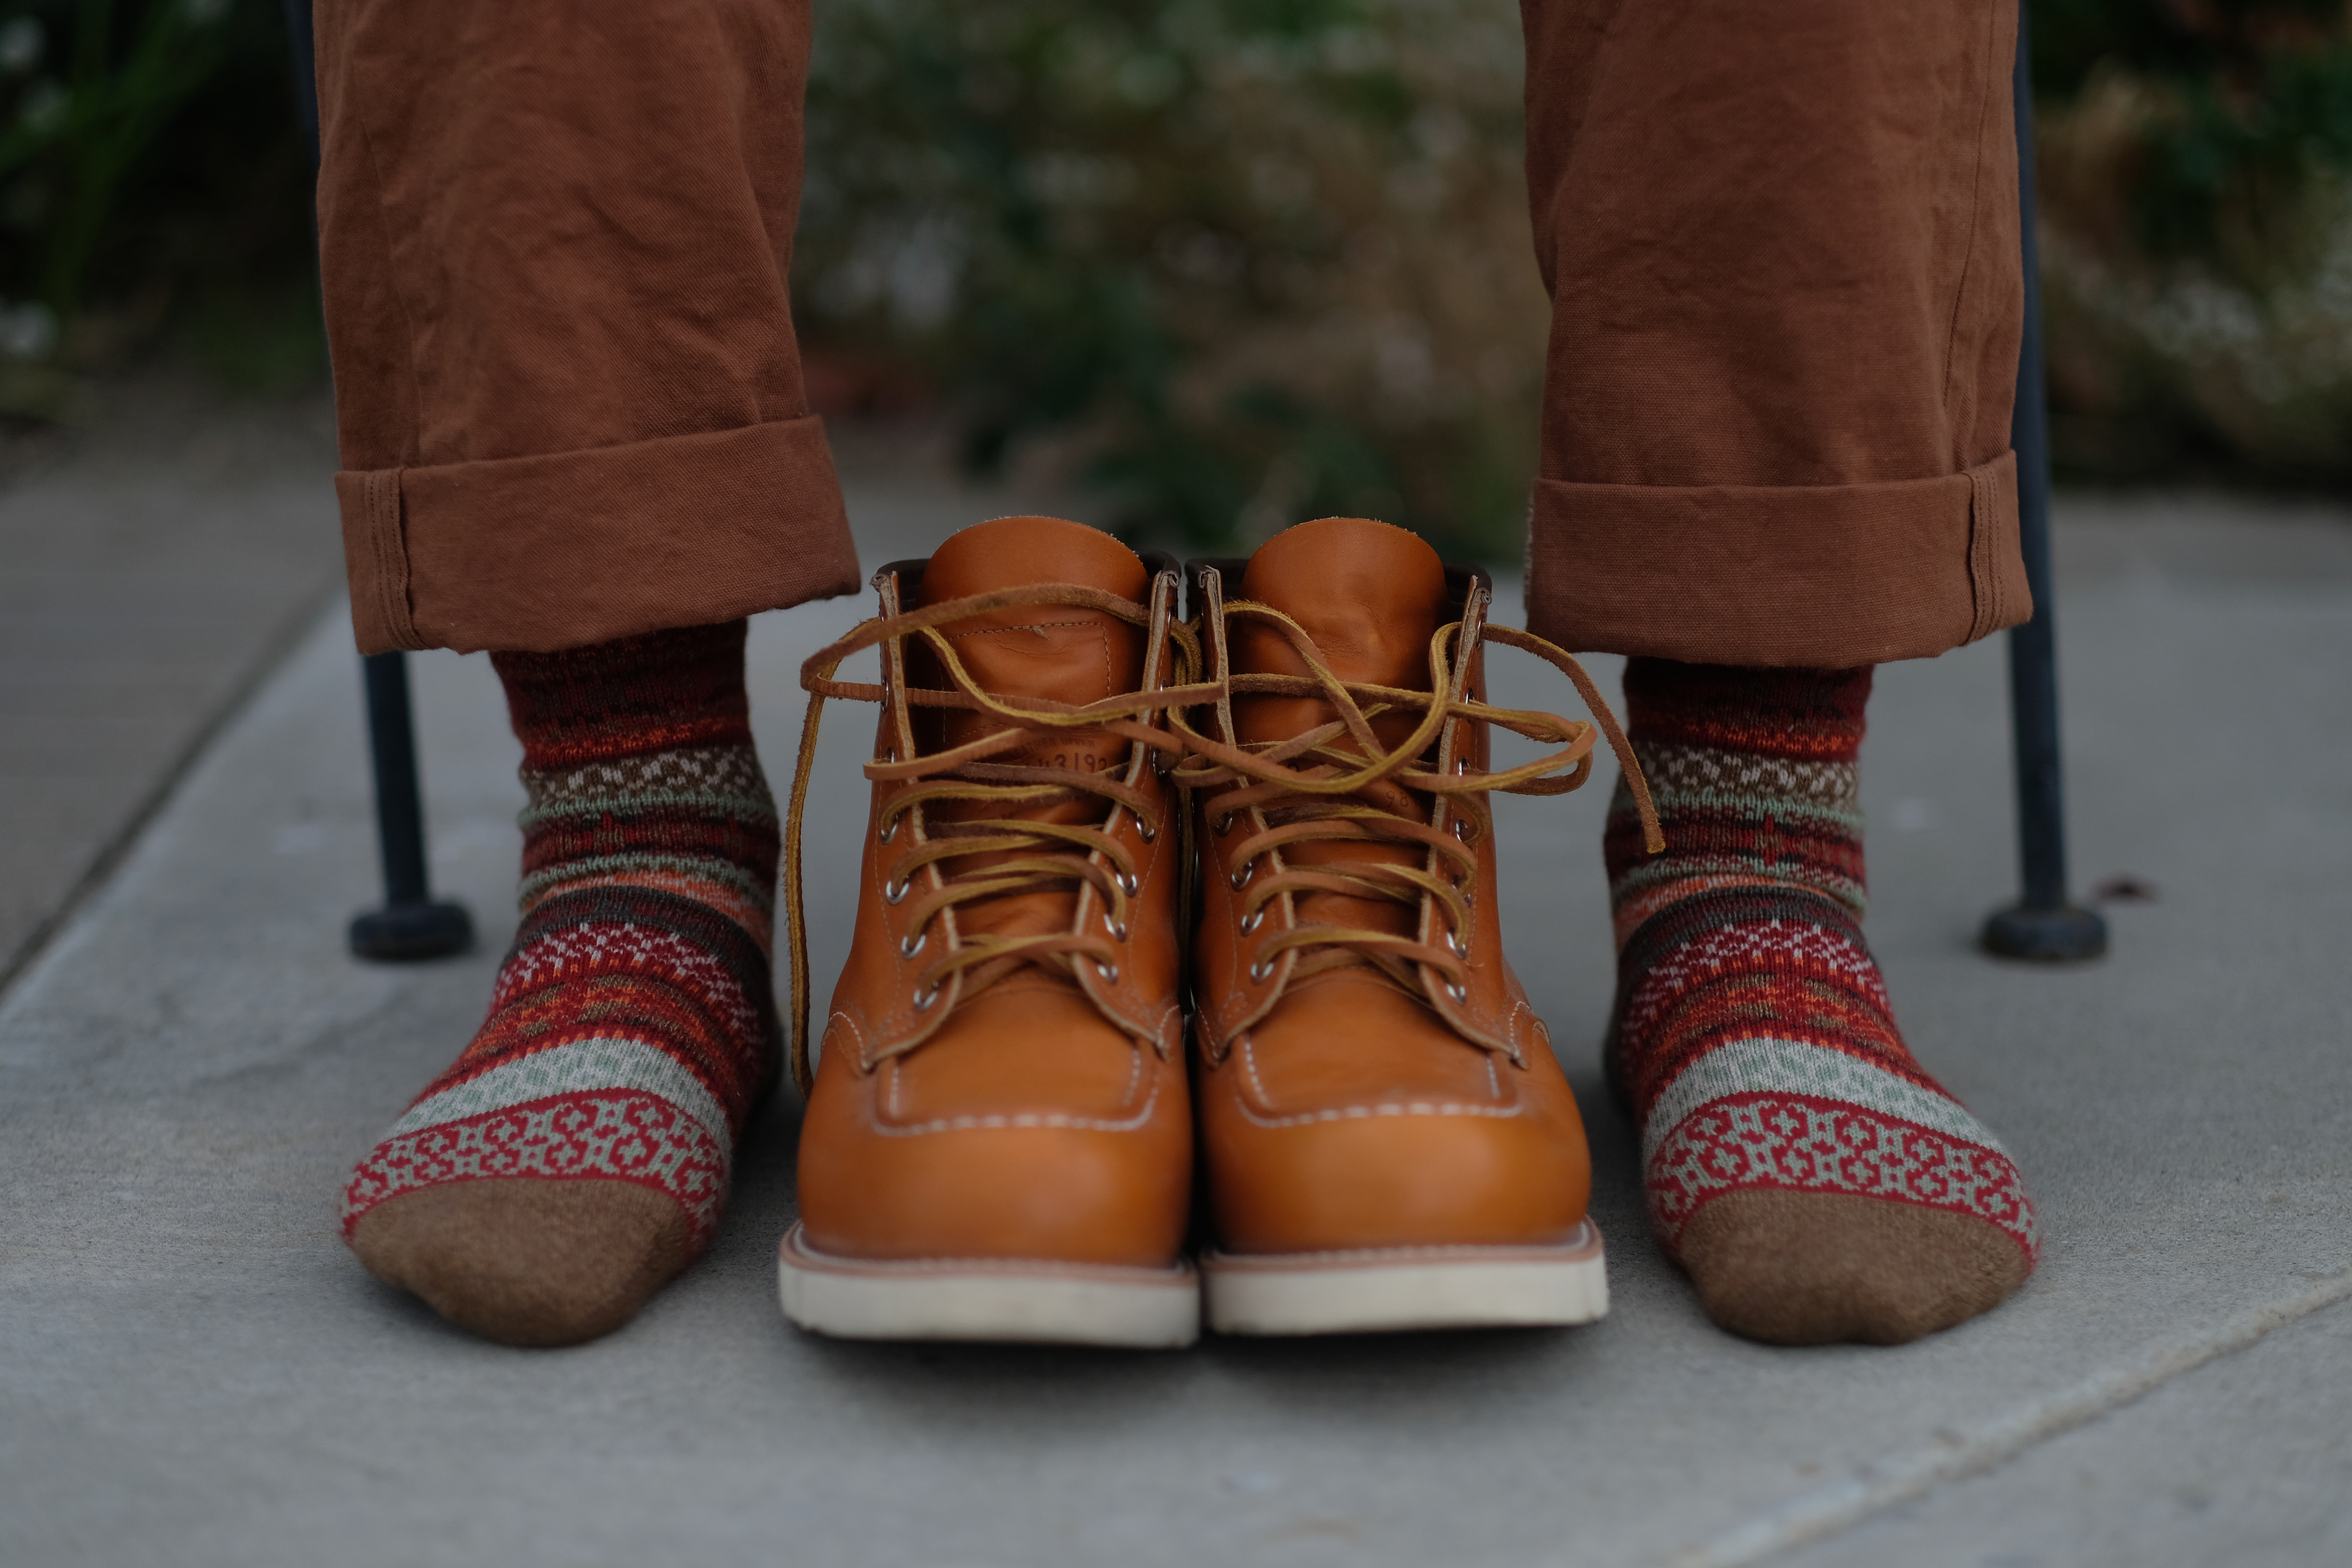 Red Wing Moc Toe Boot Review – Almost